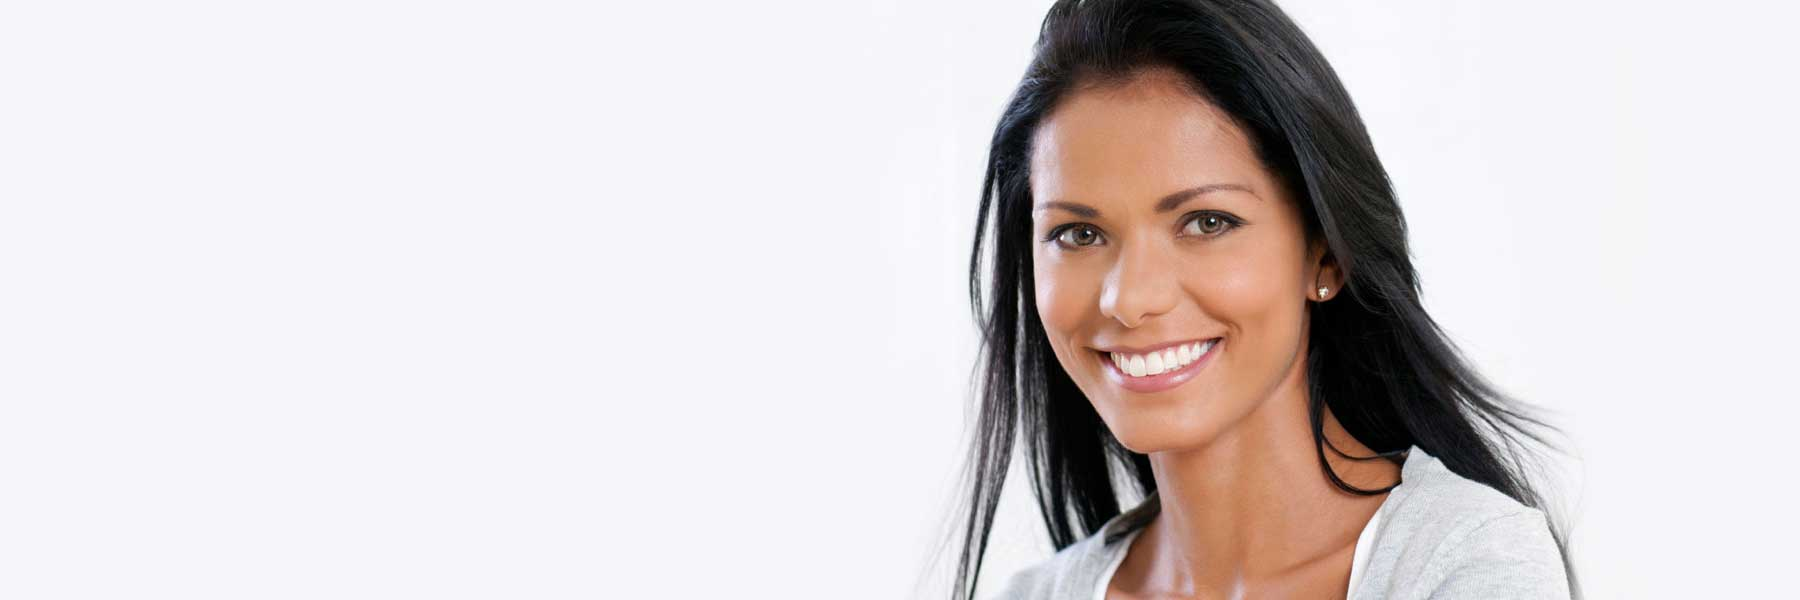 General Dentistry and Preventative Care | Dentist